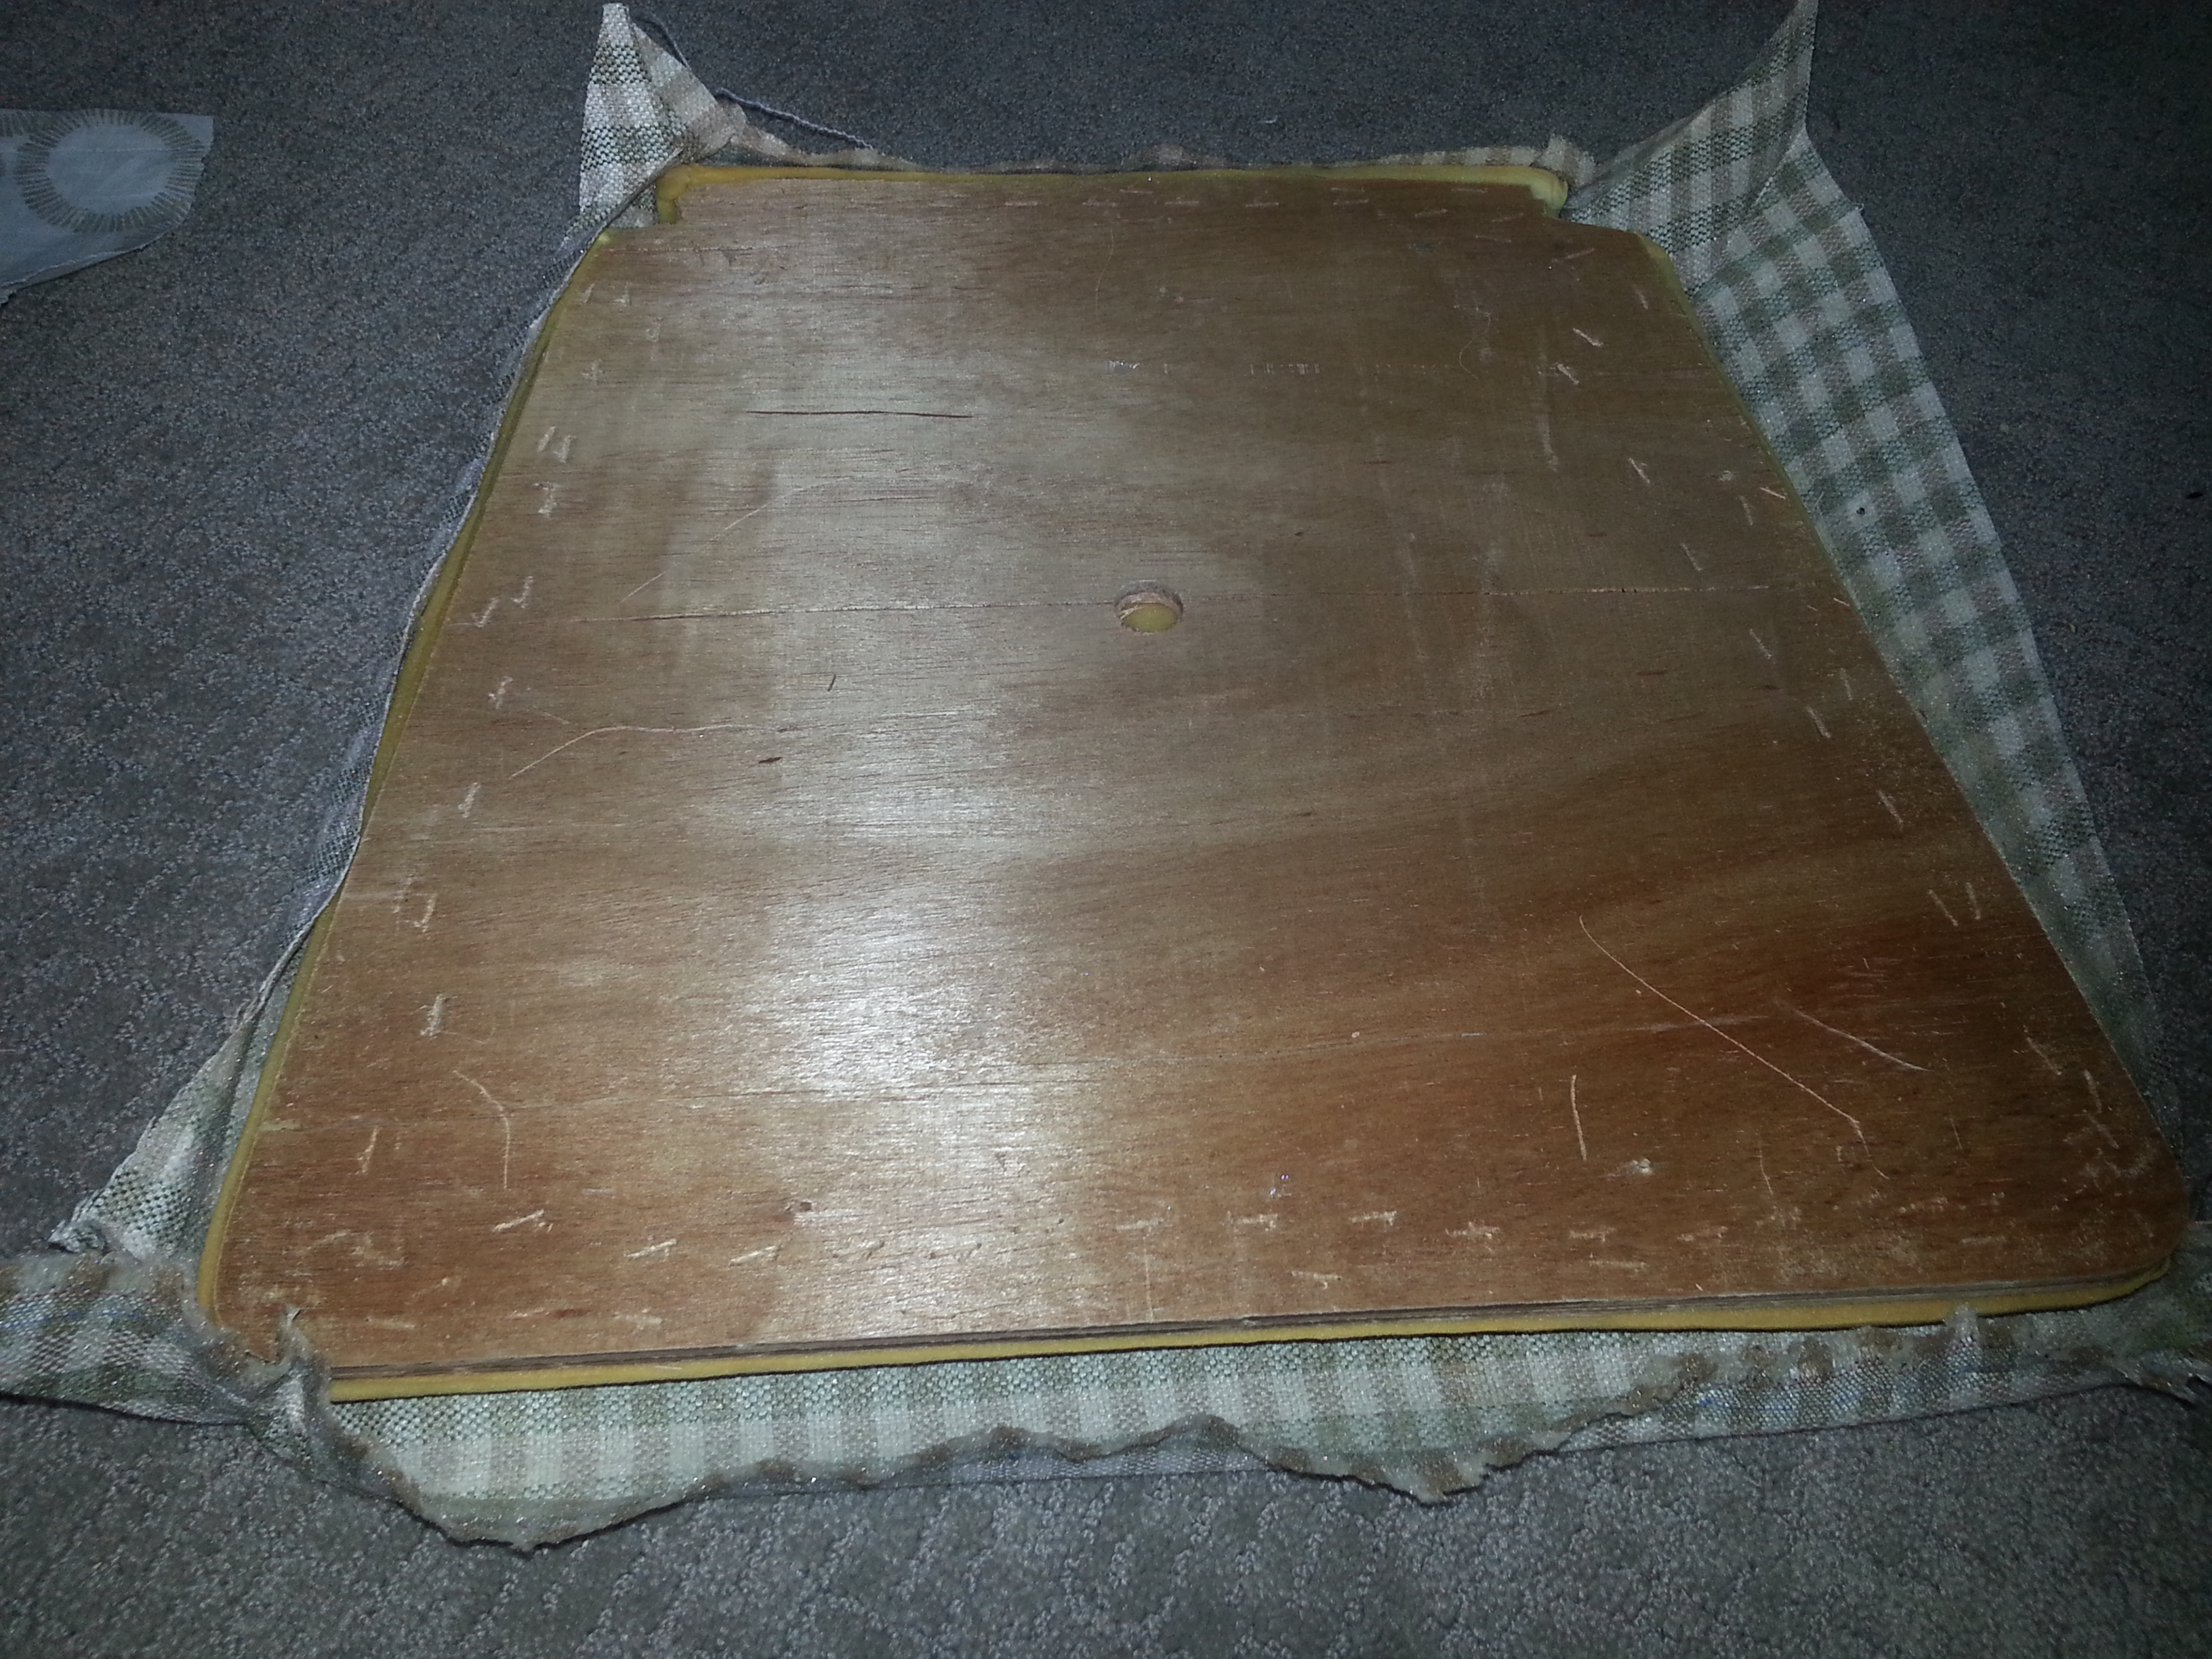 Existing Cushion Fabric Removed